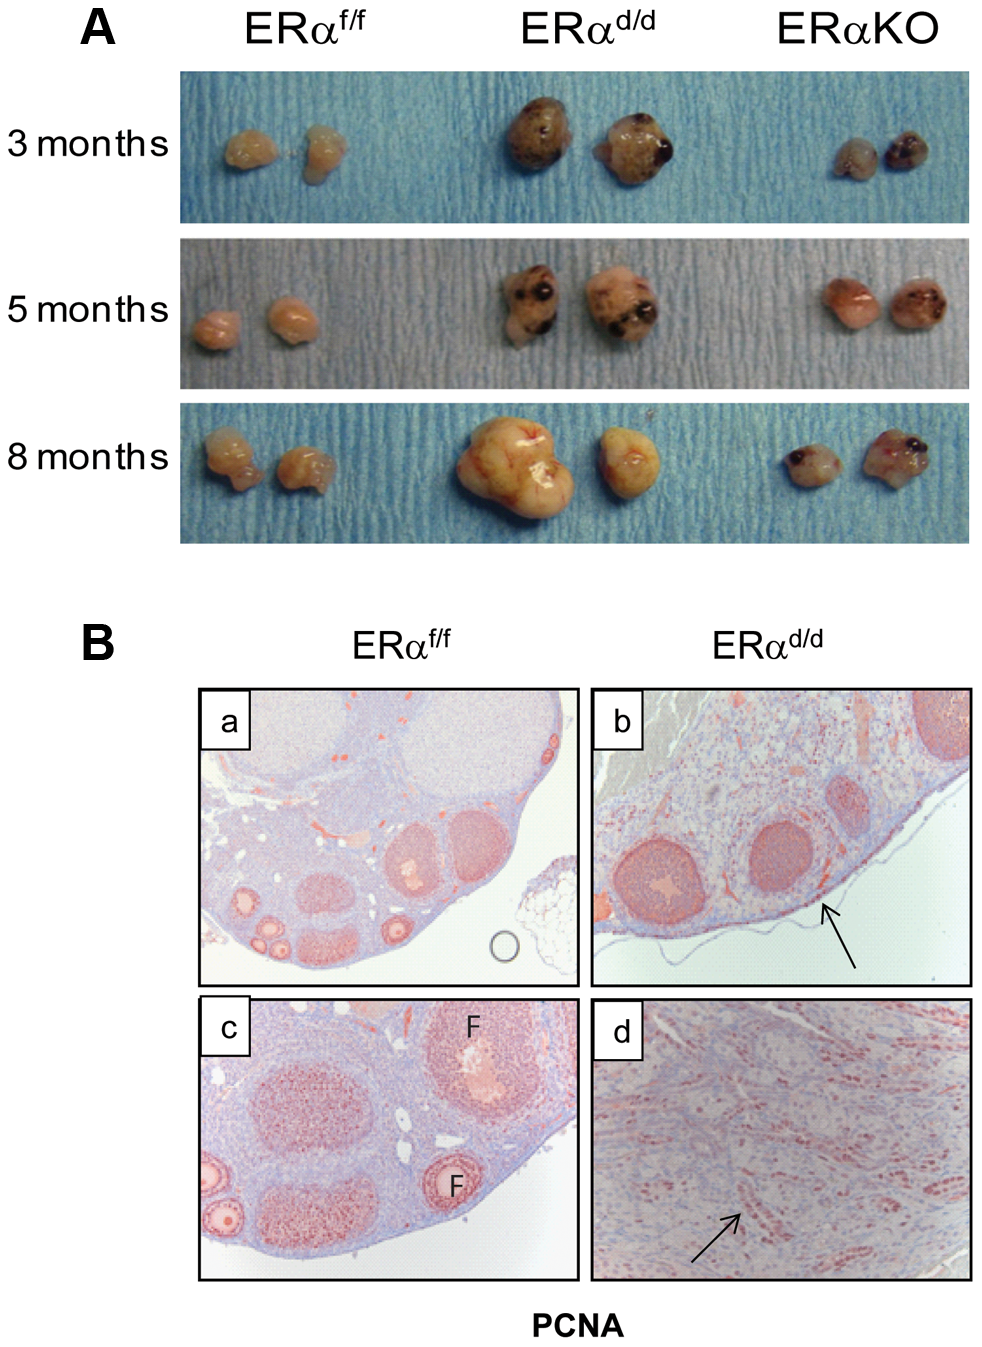 The ERα<sup>d/d</sup> mice form proliferative ovarian tumors.